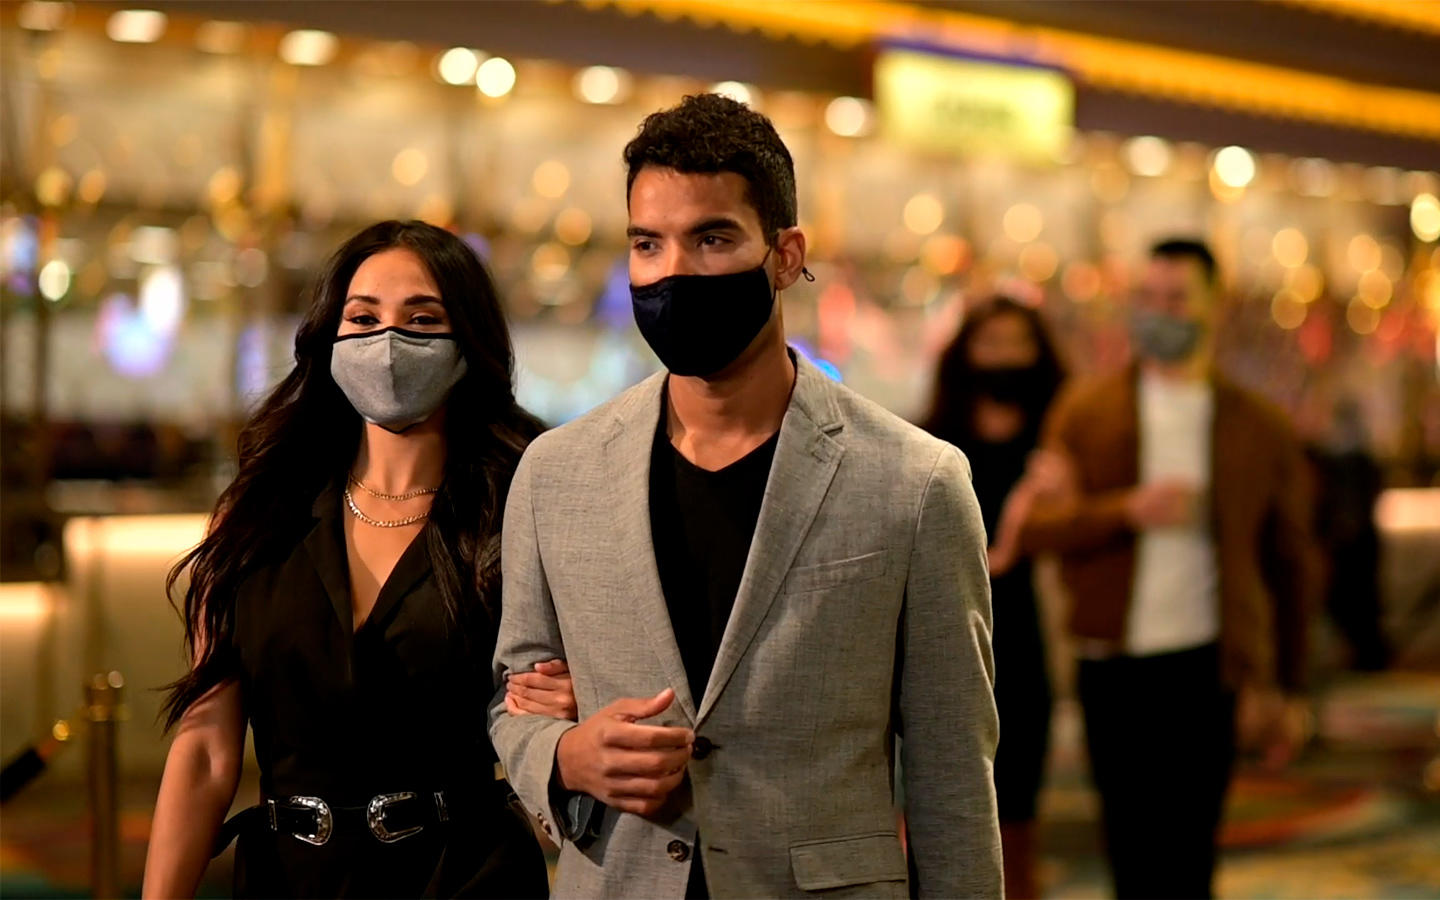 A couple wearing masks